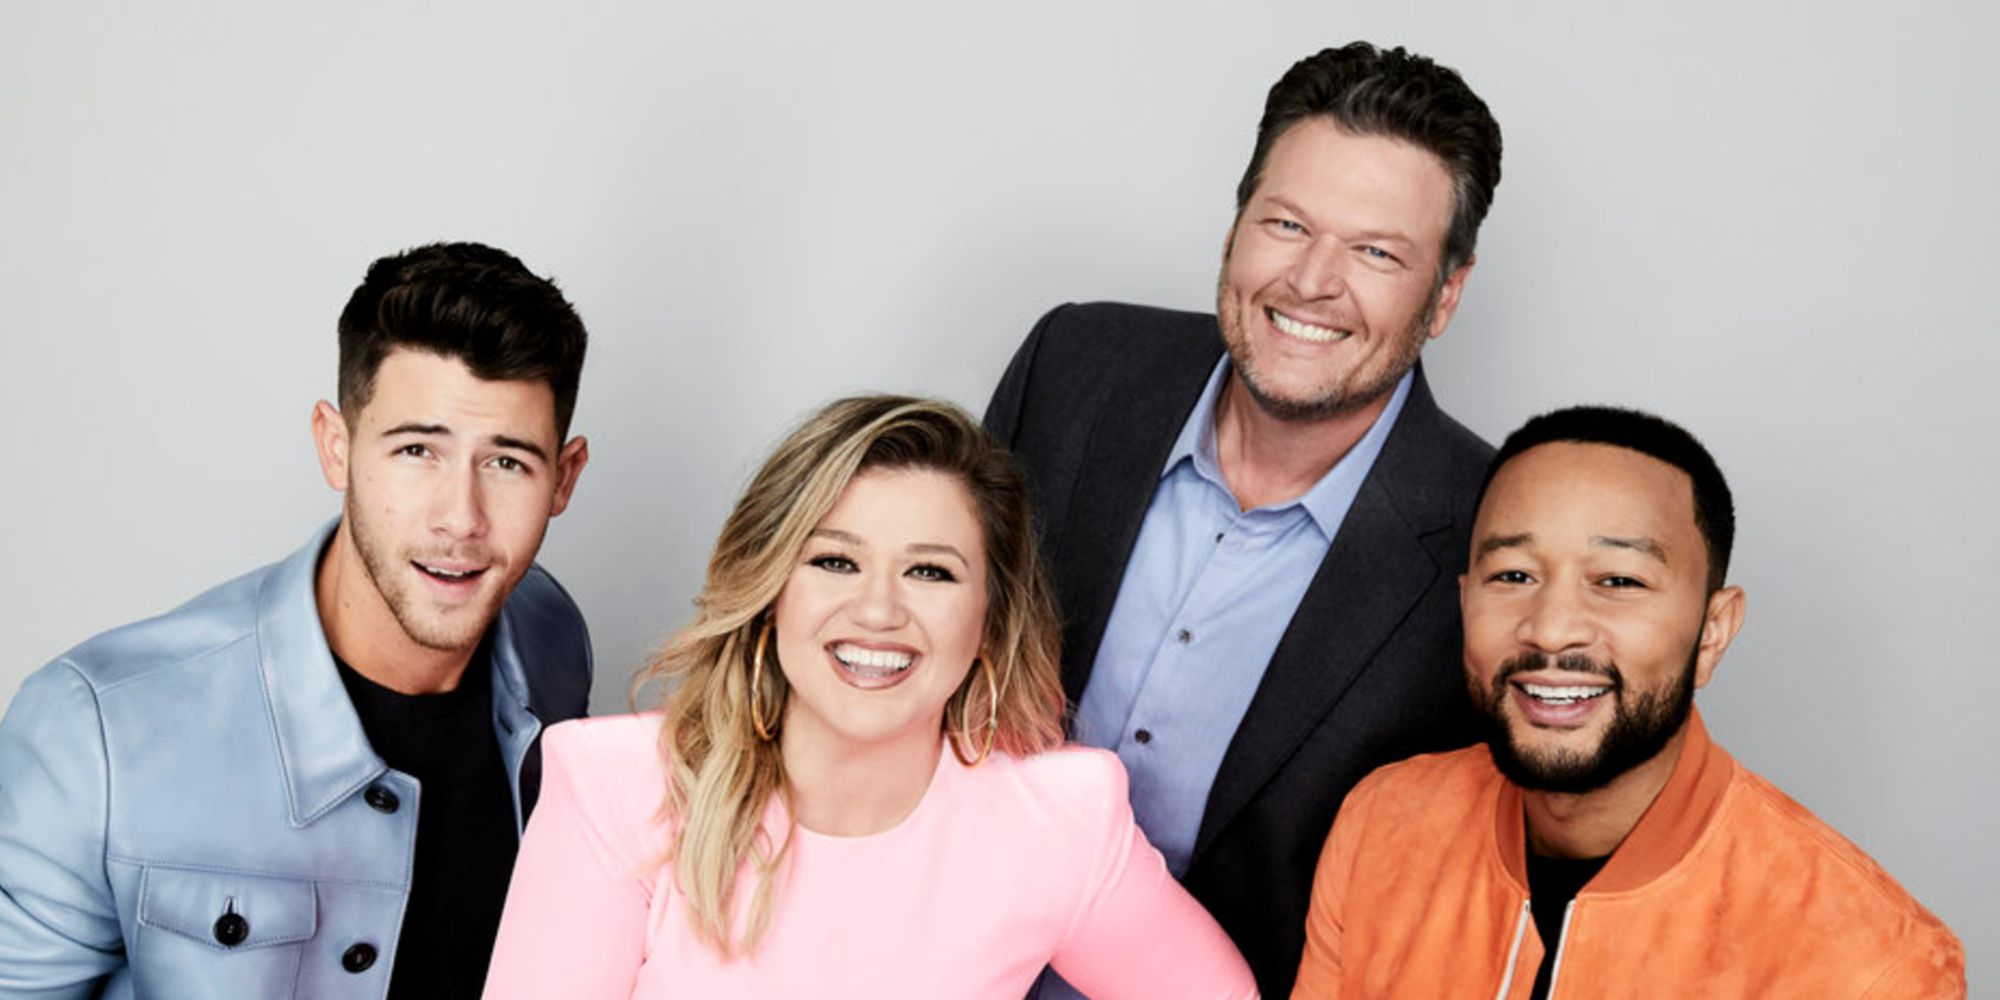 The Voice: All The Singers Chosen During Week 1 Of Blind Auditions